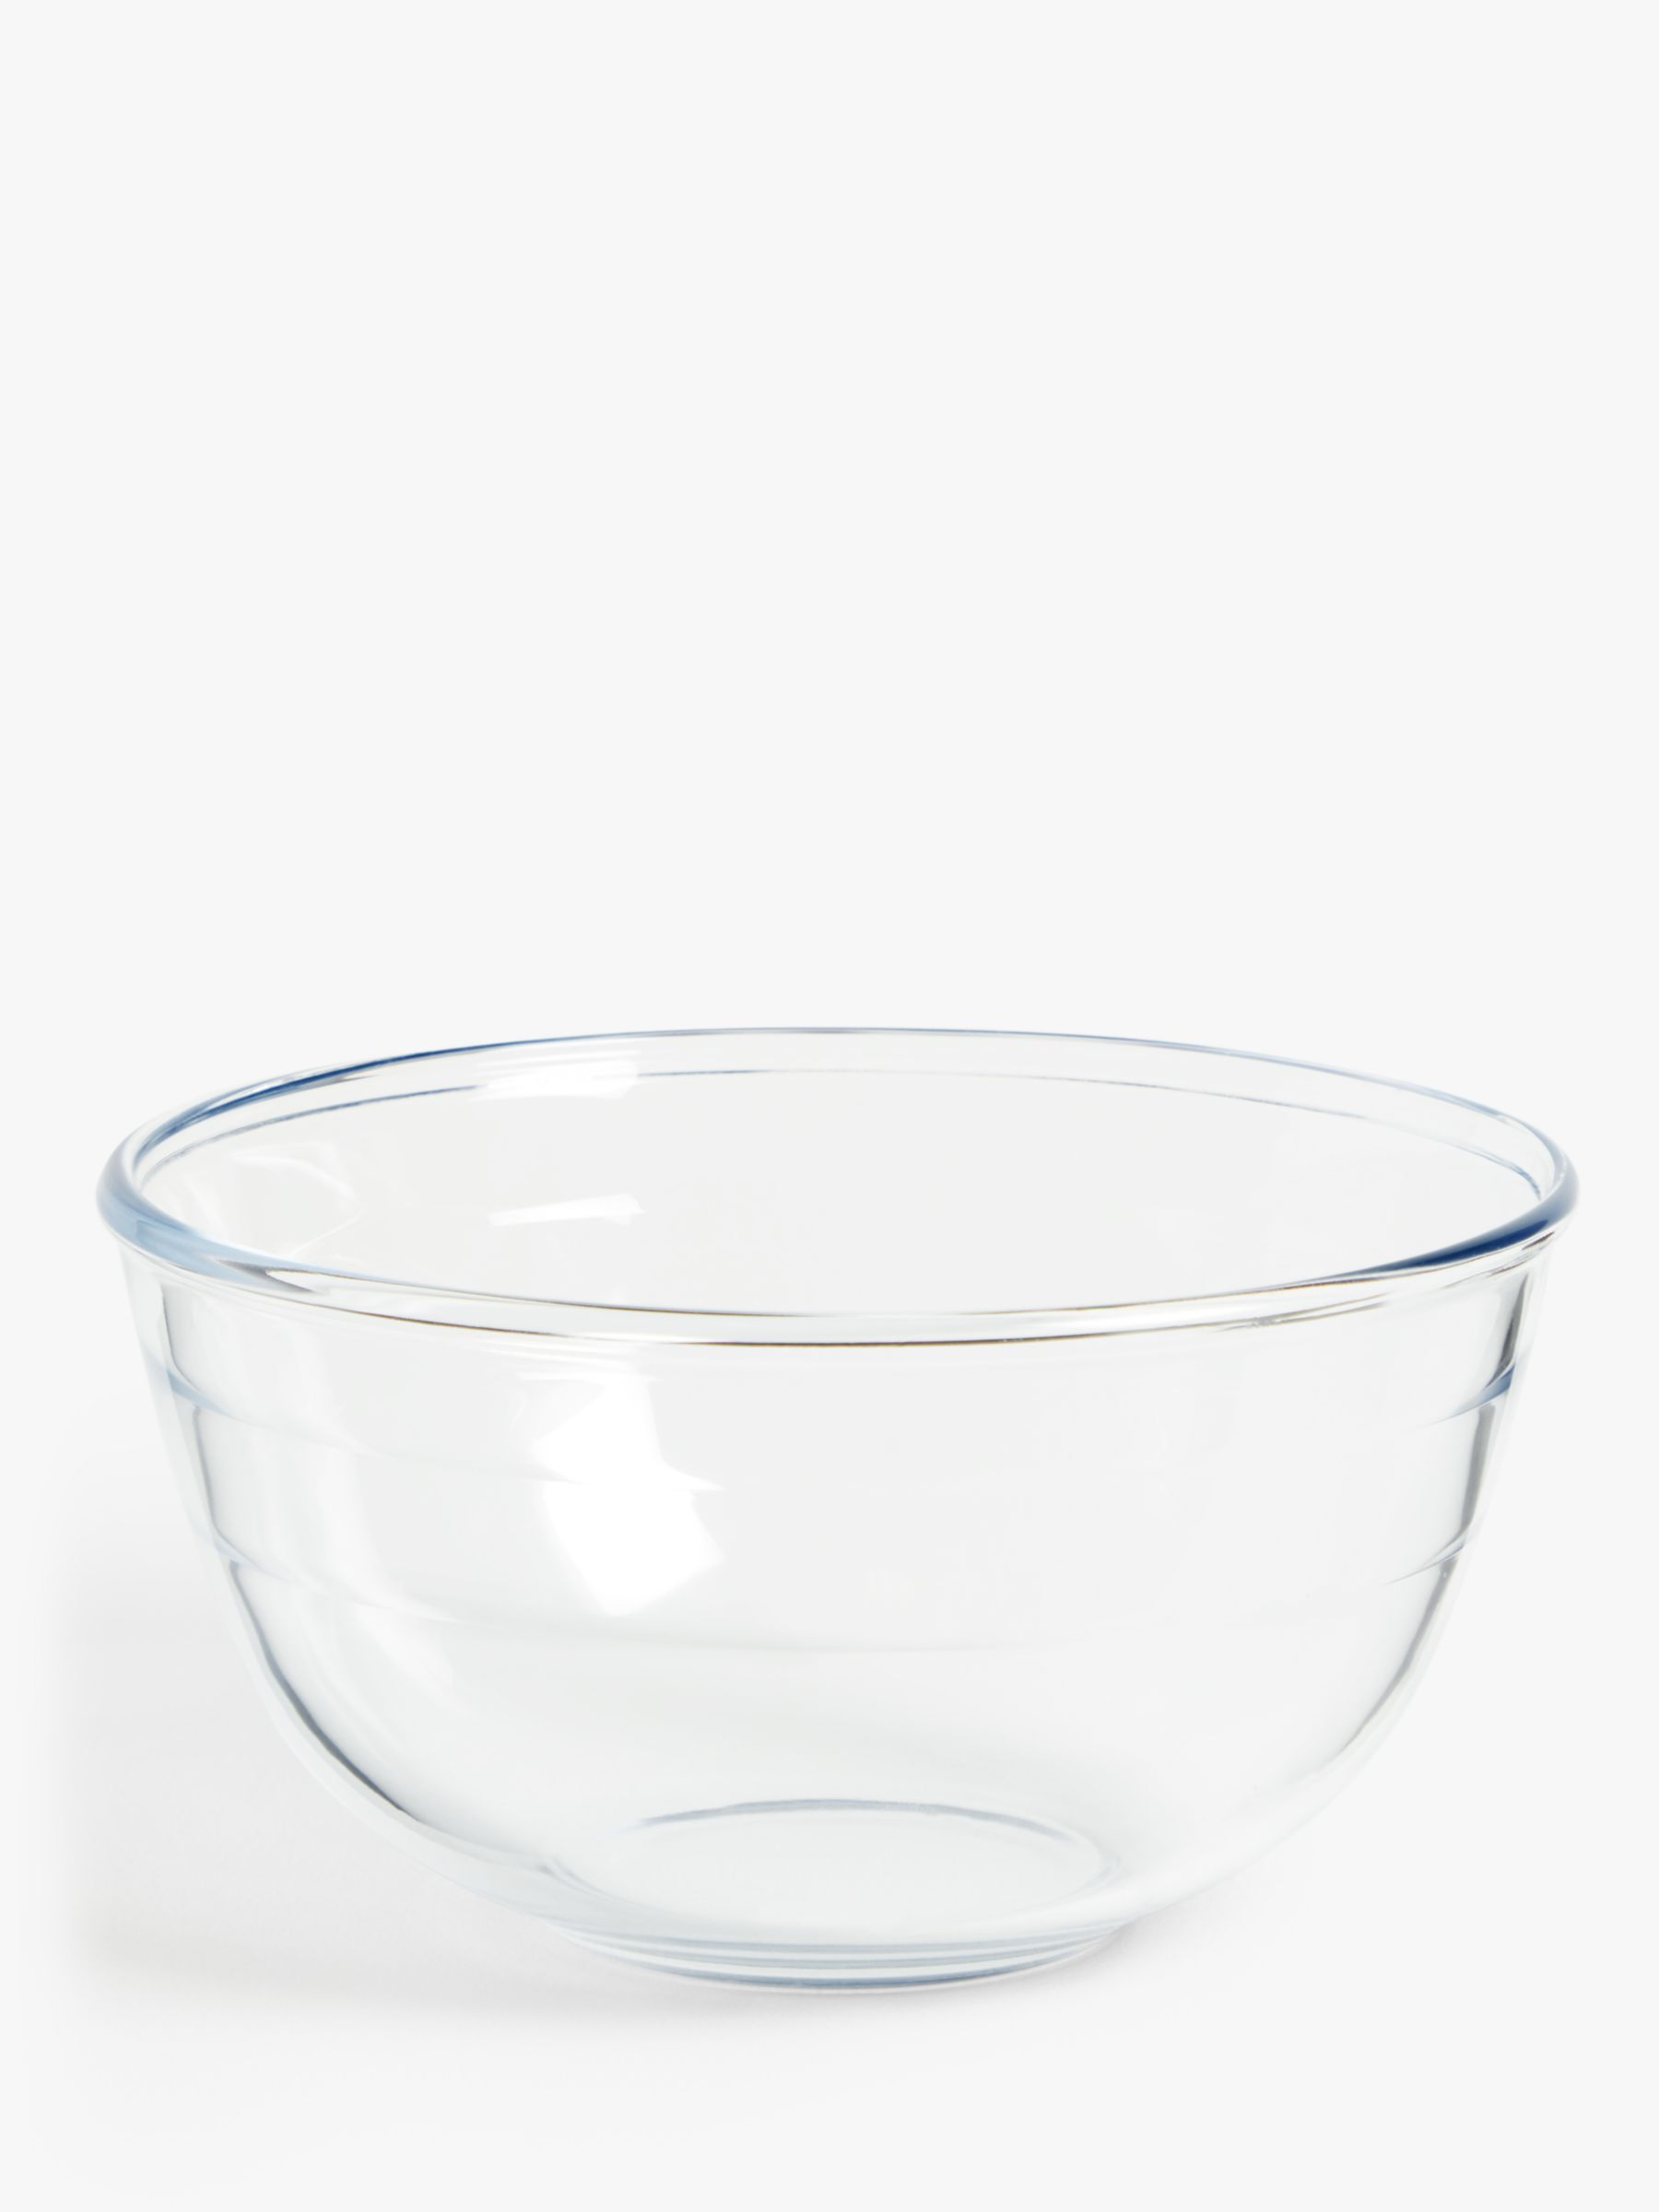 ANYDAY John Lewis & Partners Glass Mixing Bowl, Clear, 2L